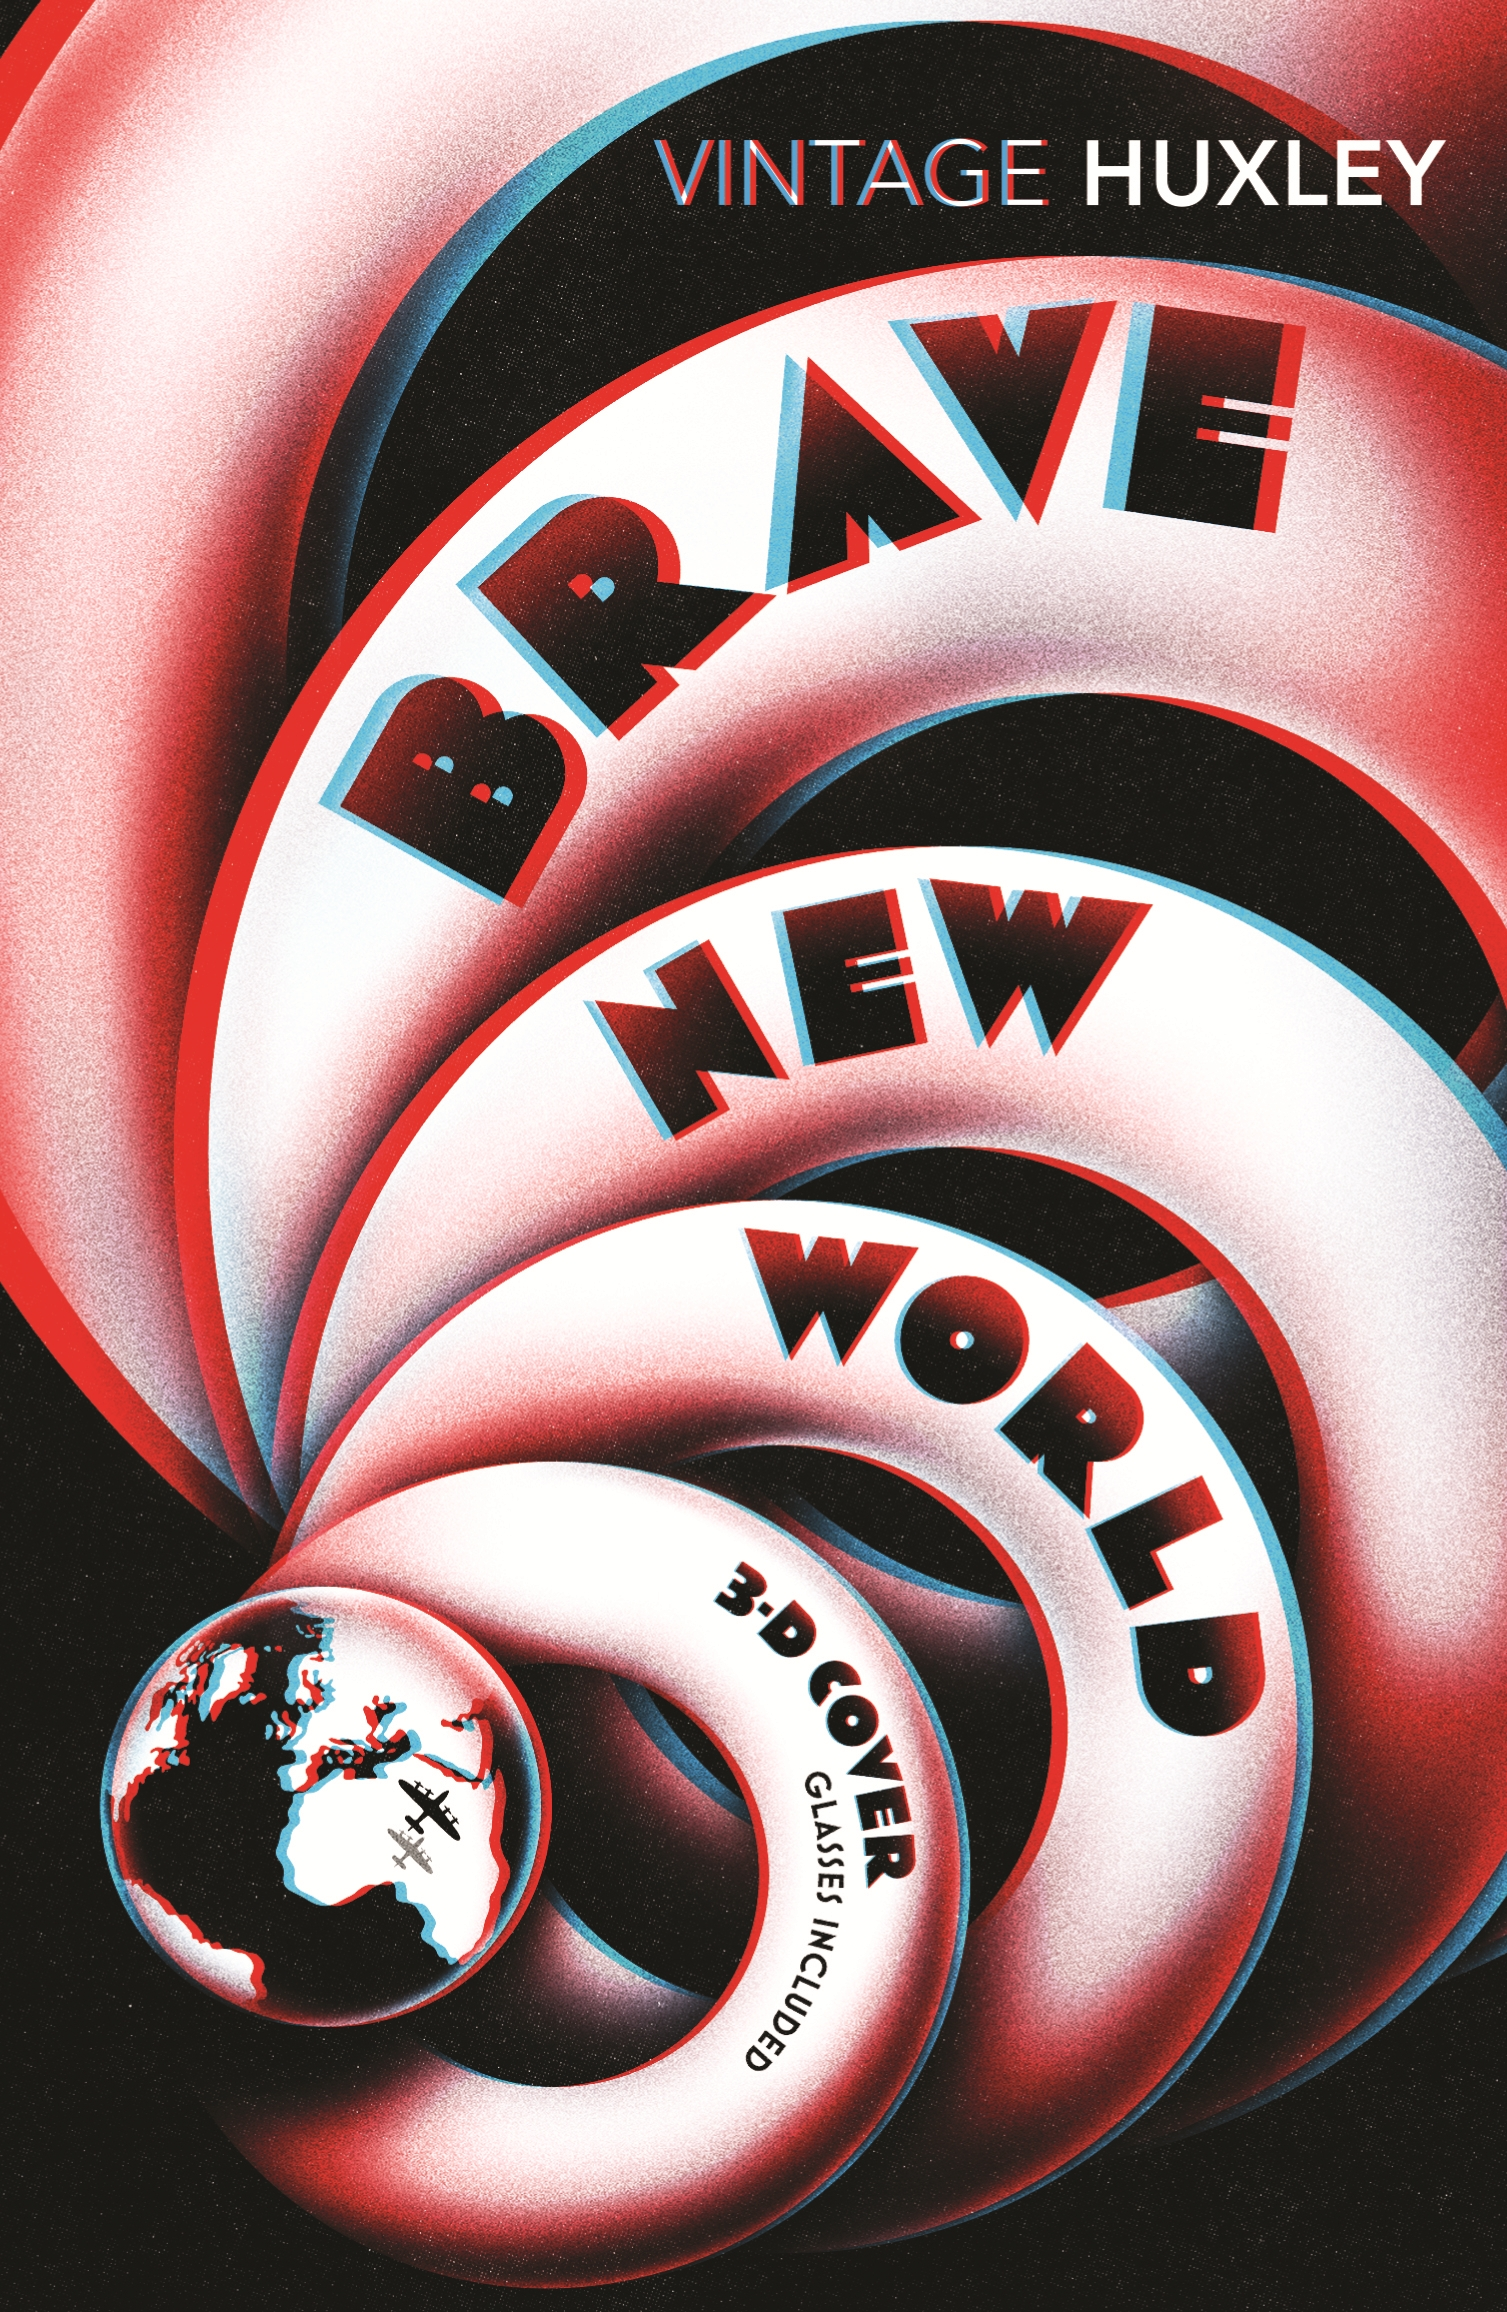 Brave New World by Aldous Huxley - Penguin Books New Zealand